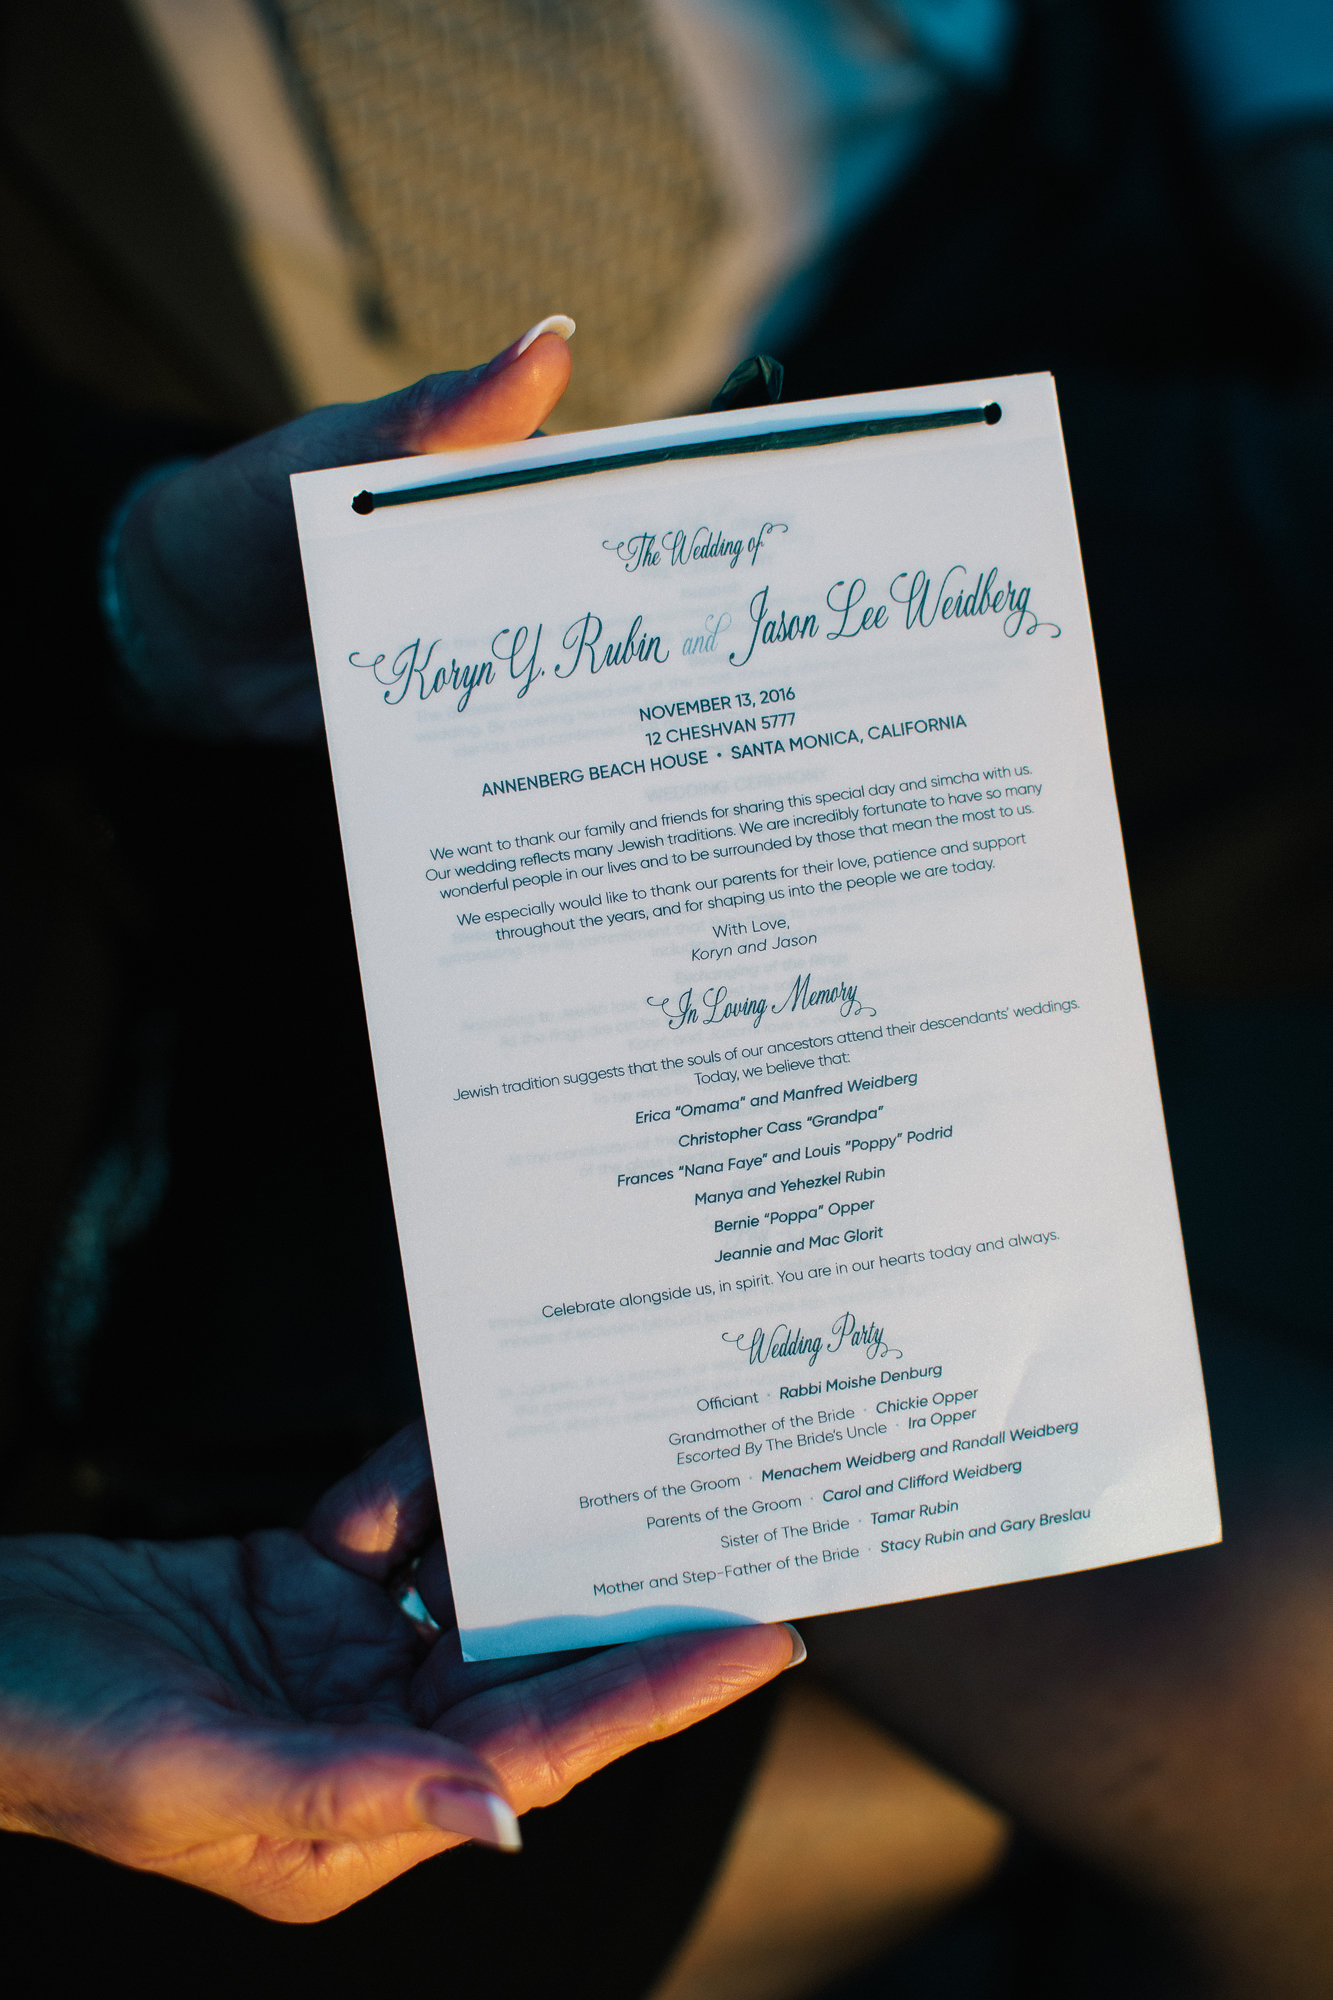 For their custom wedding programs, the first page was printed vellum giving the slightest sneak peak to the inner pages and artwork.